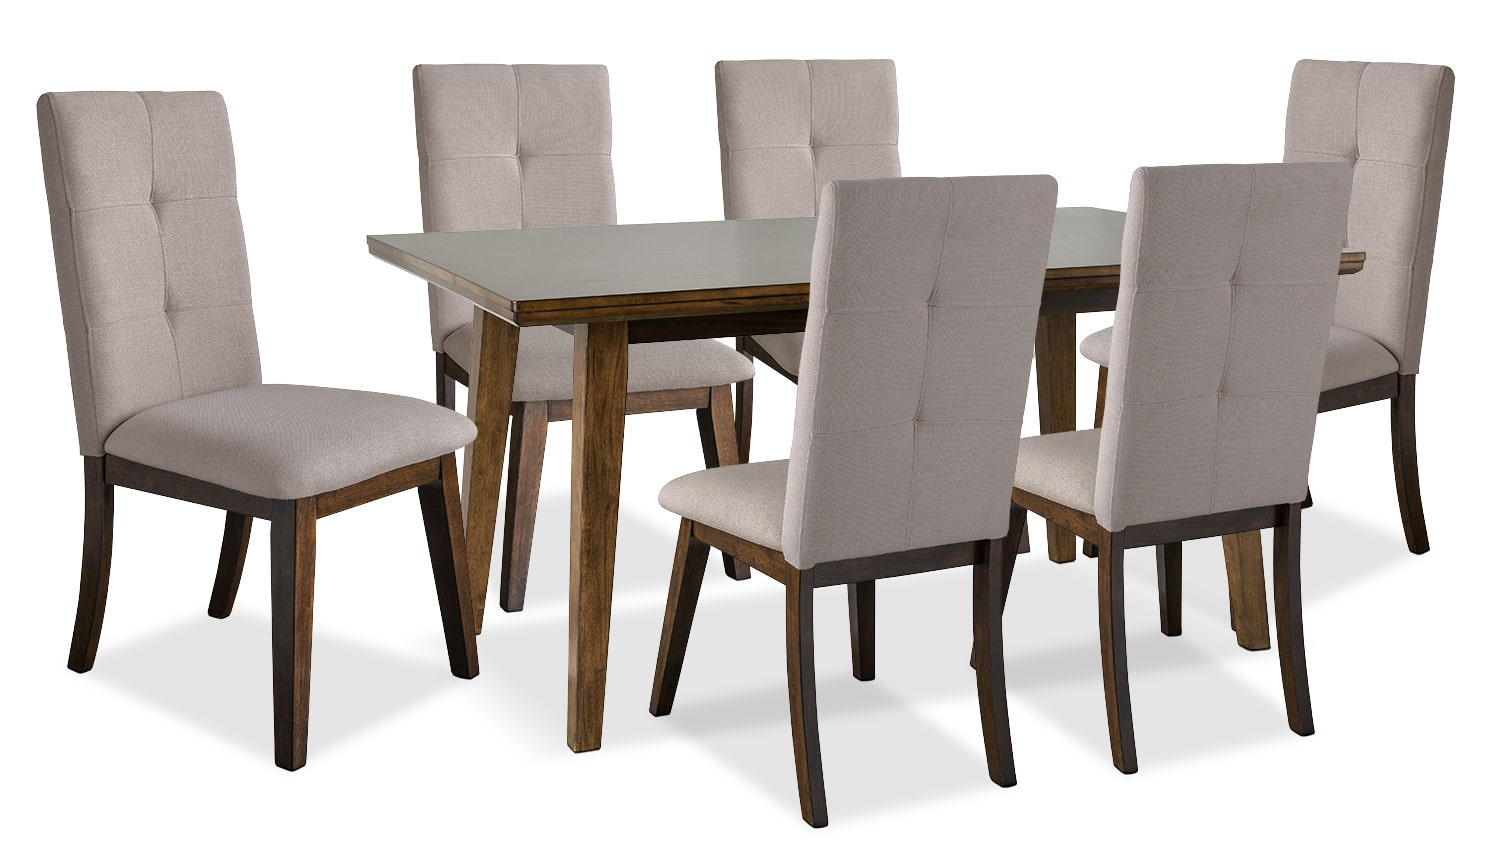 dining furniture dining kitchen furniture costco imageservice chelsea piece dining table package with beige chairs the brick